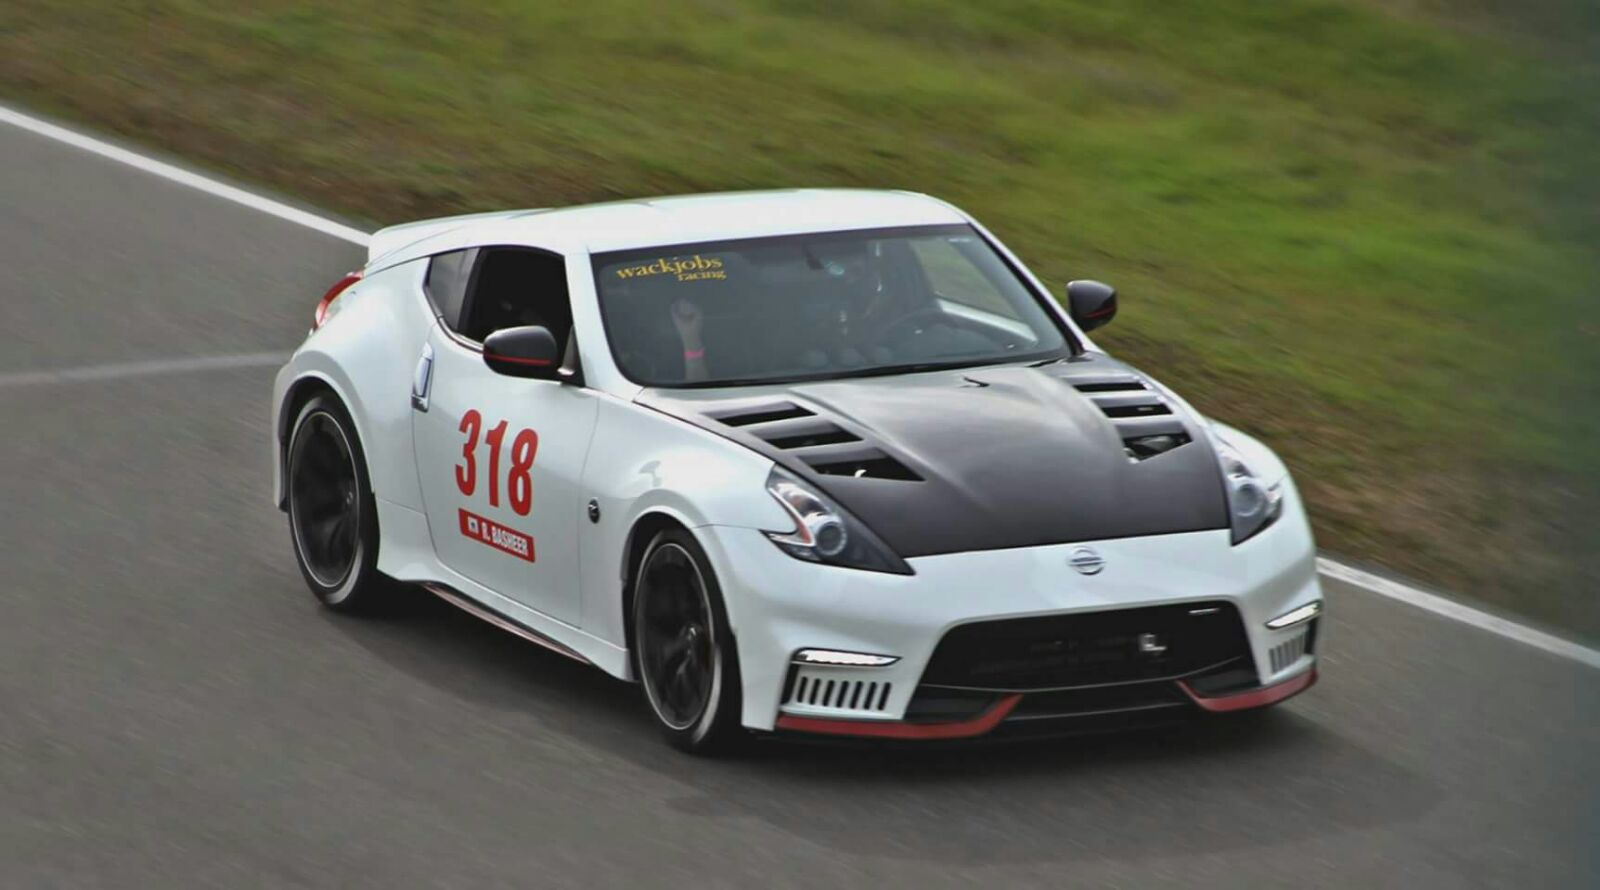 Z Car Blog Z34 370z Fuse Box Location Rasheed B Has Been Testing His 2015 Nismo At The Track Since Addition Of A Twin Turbo Kit Full Report Soon And Sent Us Few Pics From